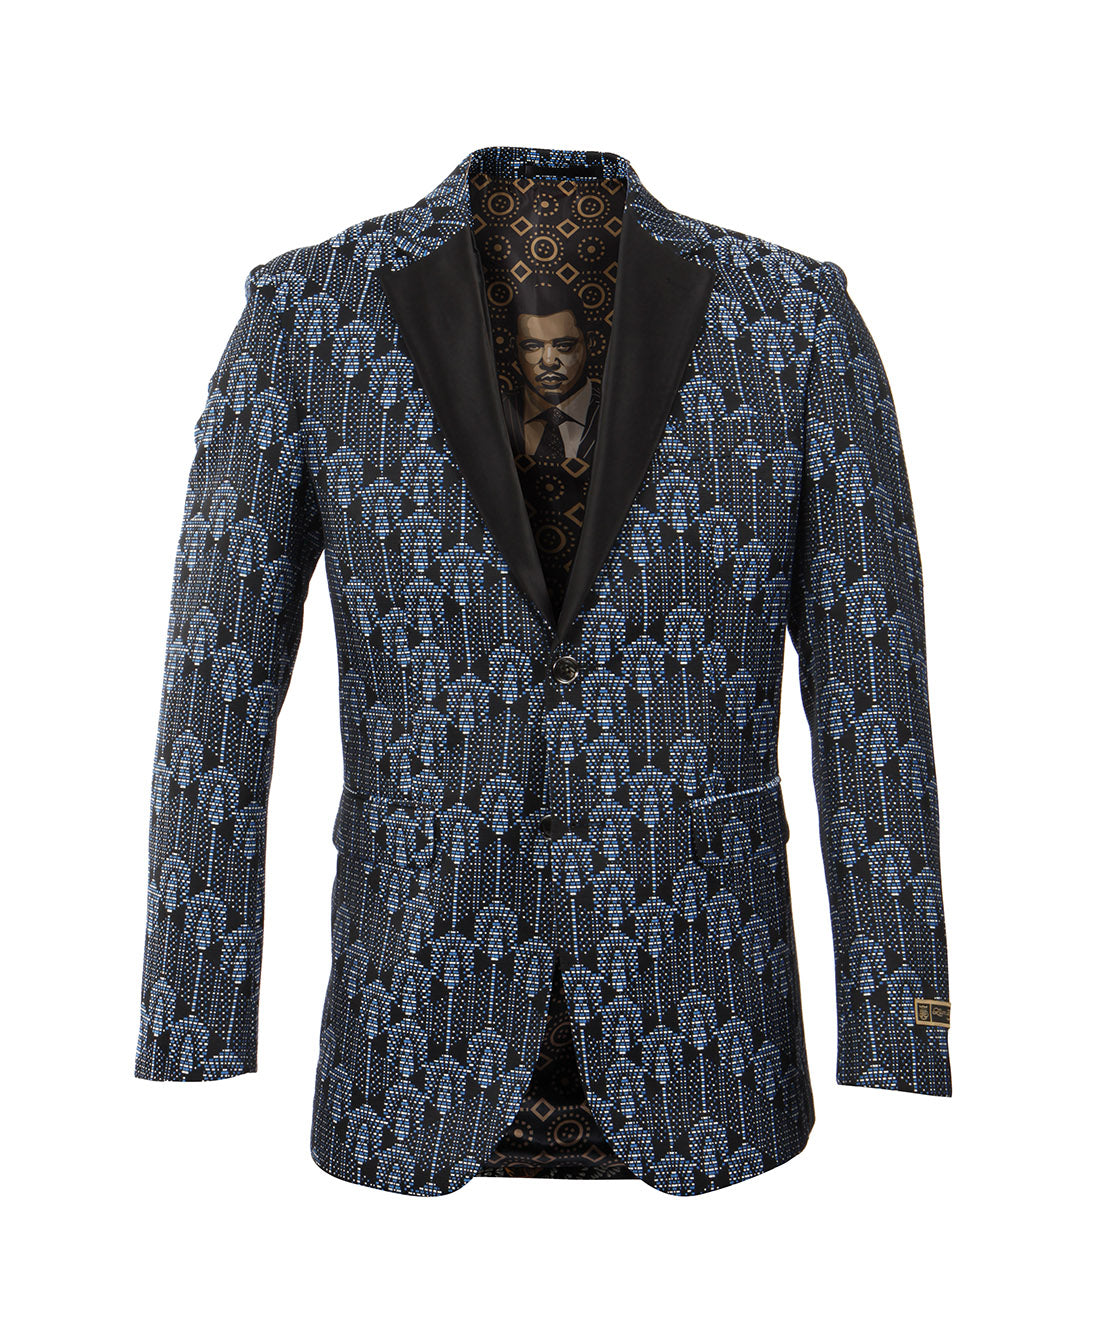 Blue/Black Empire Show Blazers Formal Dinner Suit Jackets For Men ME225-01